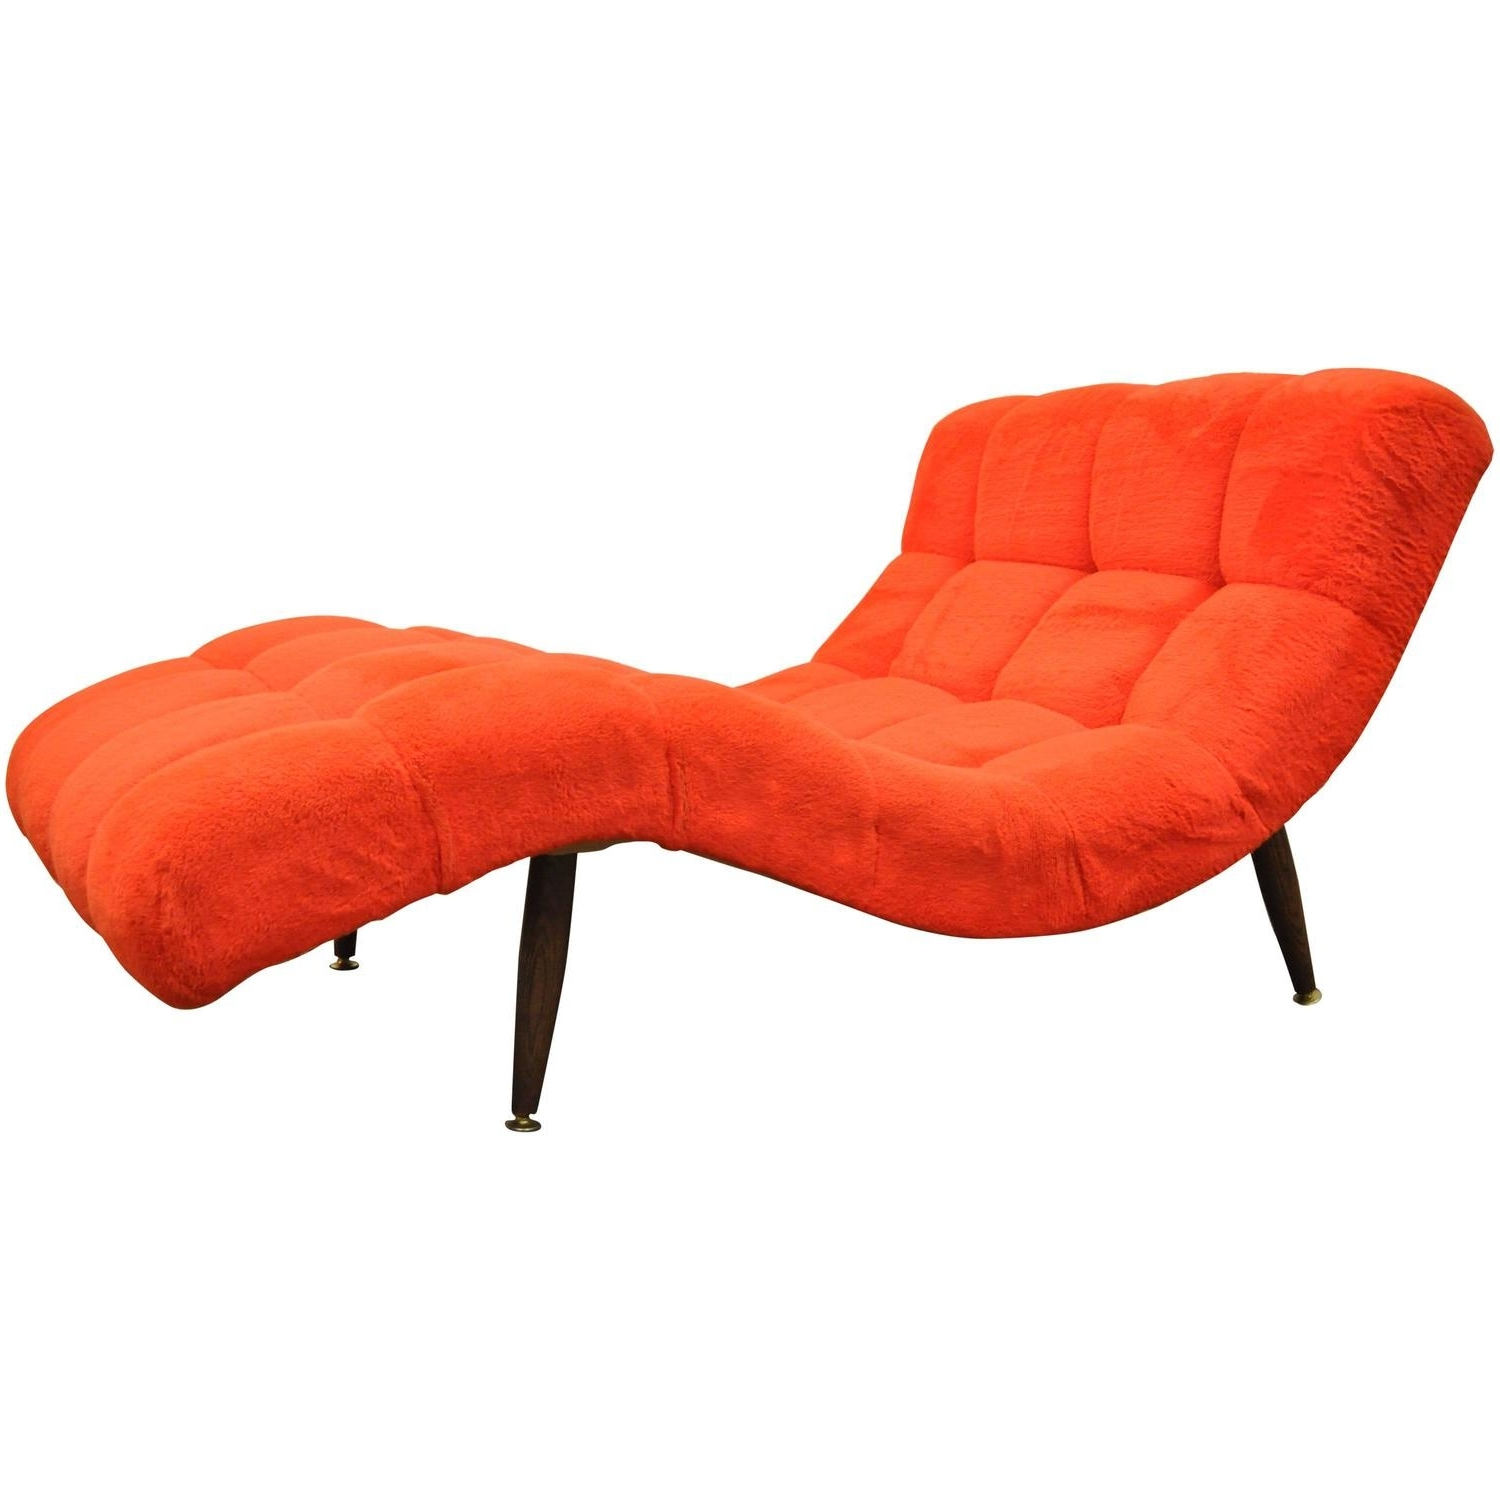 Vintage Mid Century Modern Double Wide Wave Chaise Lounge For Sale Regarding Most Current Mid Century Modern Chaises (View 14 of 15)